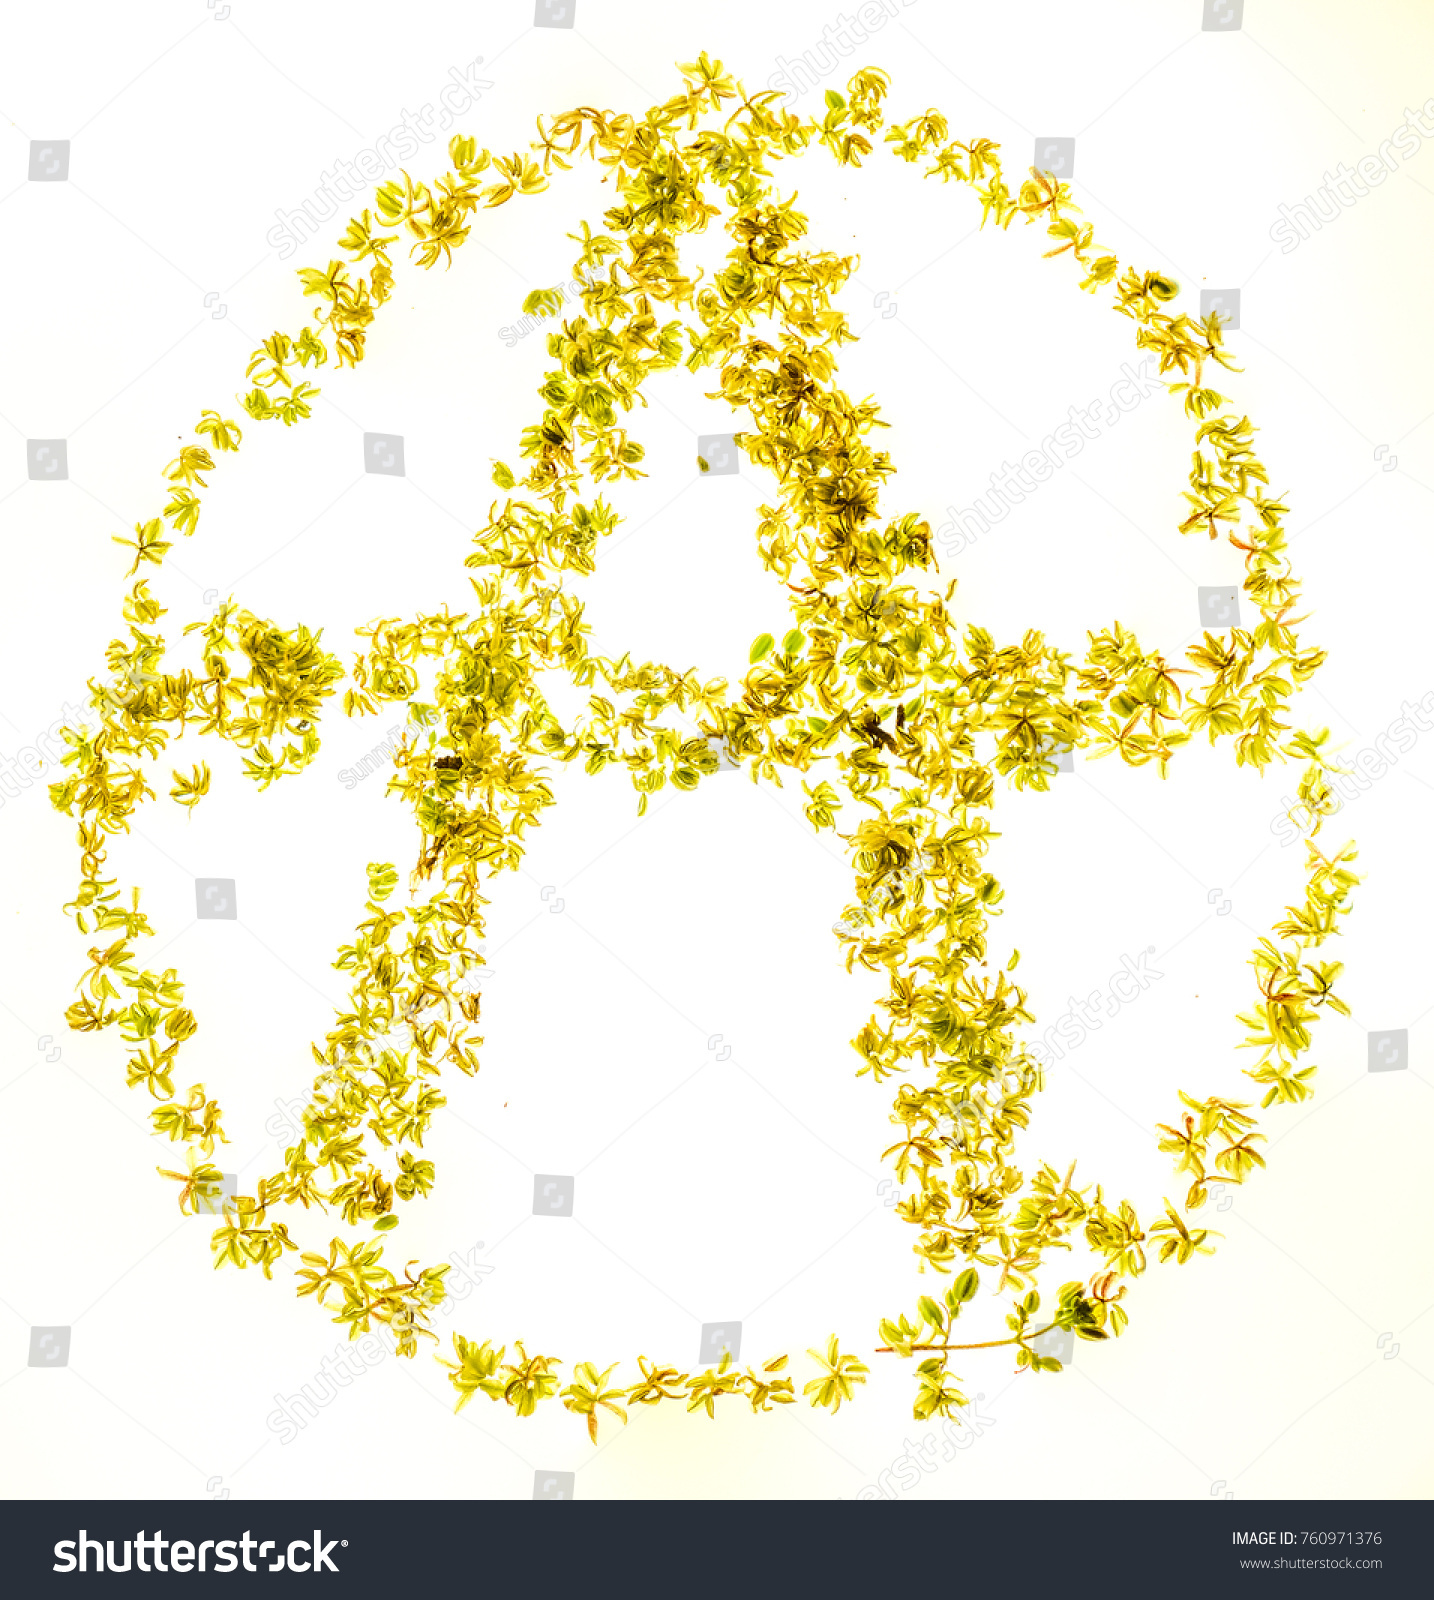 Small fresh marijuana buds lay on stock photo 760971376 shutterstock small fresh marijuana buds lay on big letter a on circle as symbol of anarchy and buycottarizona